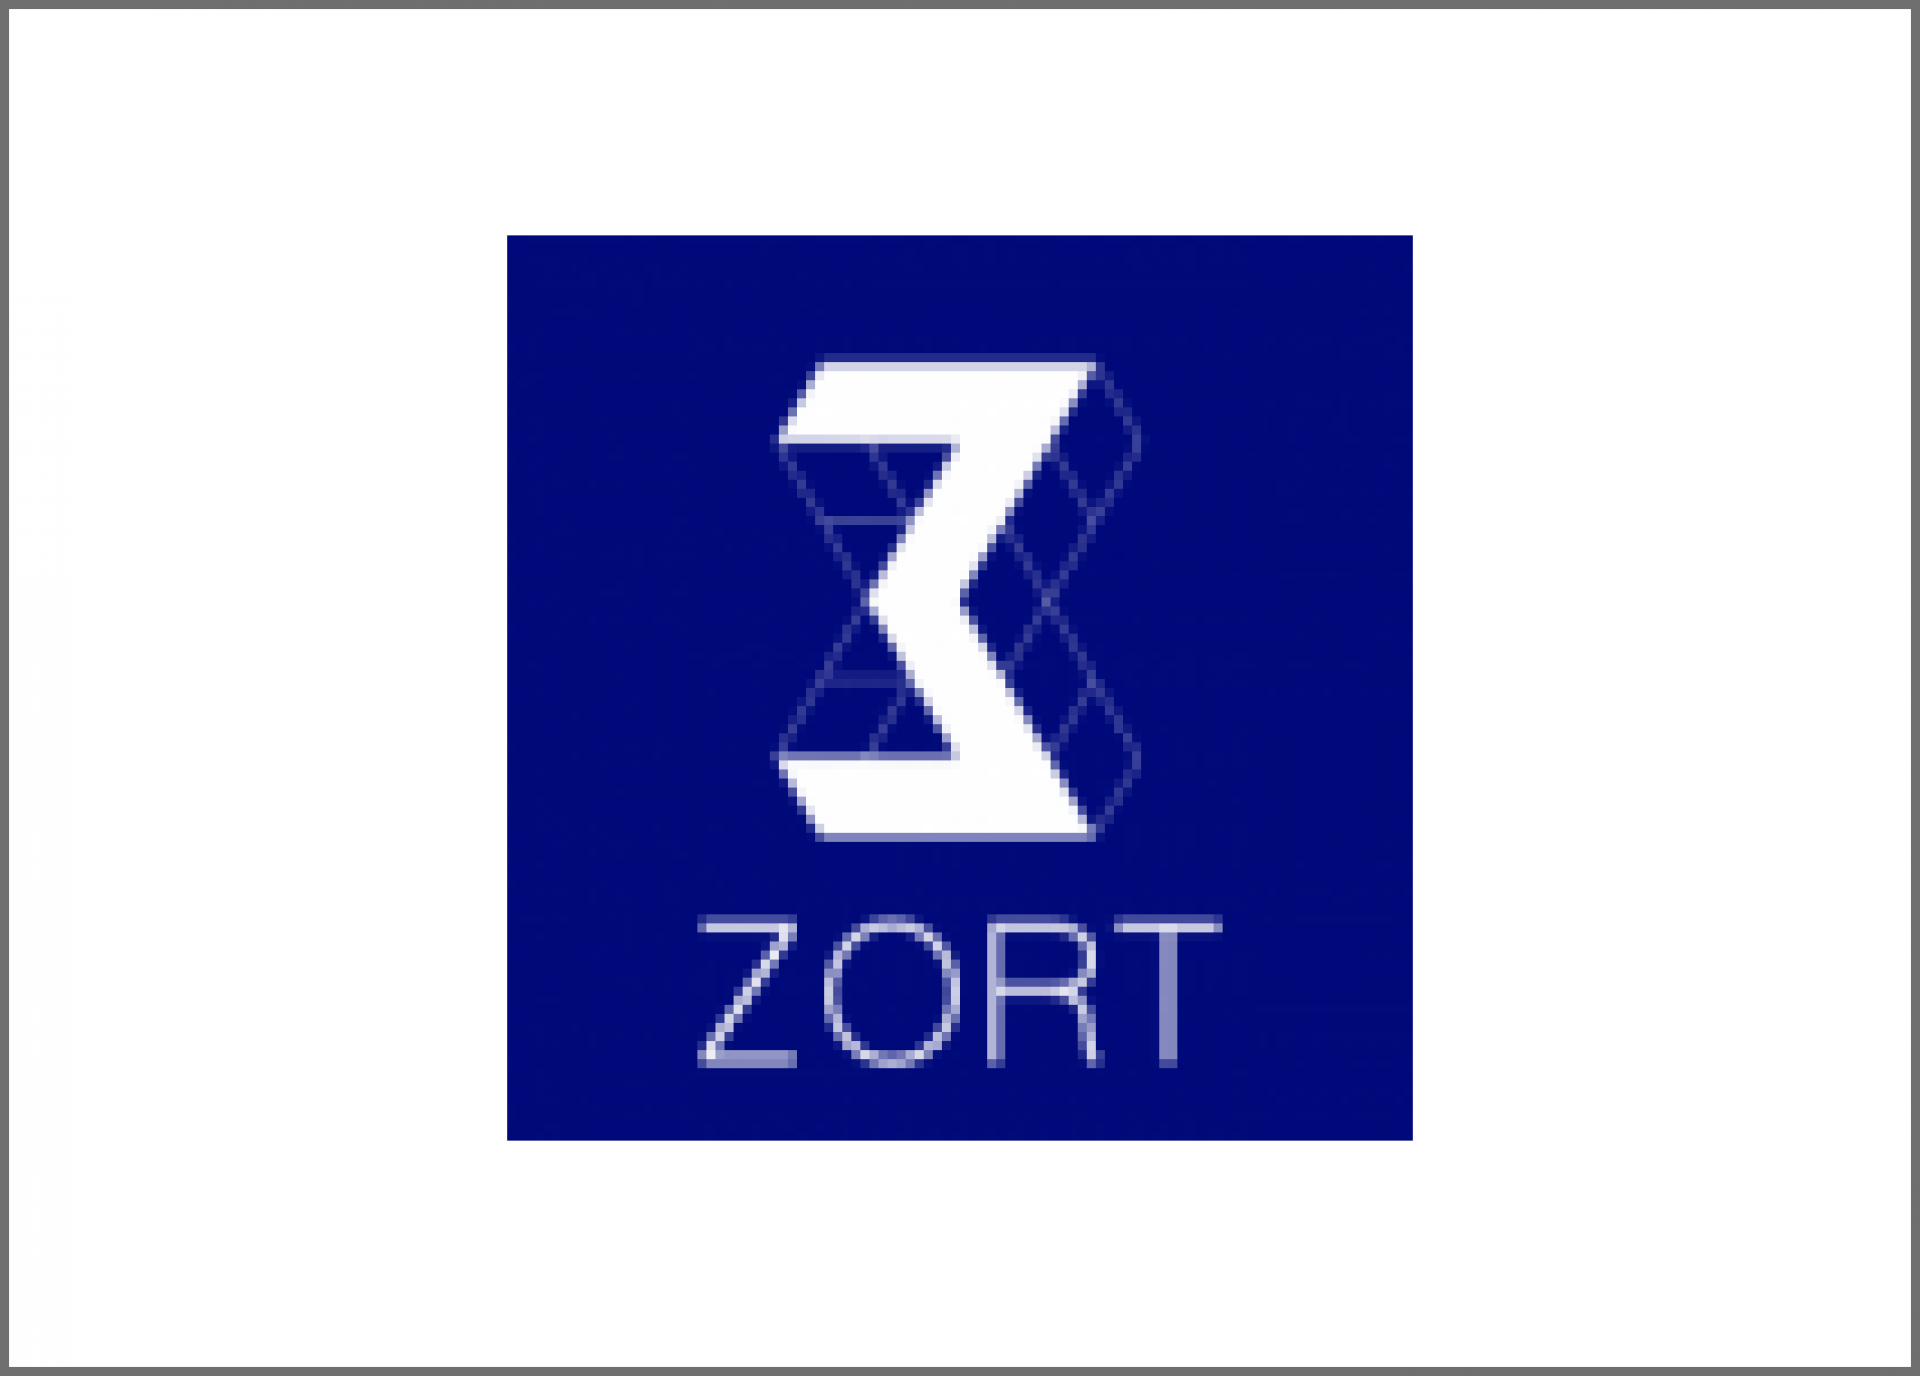 ZORTOUT Co., Ltd.